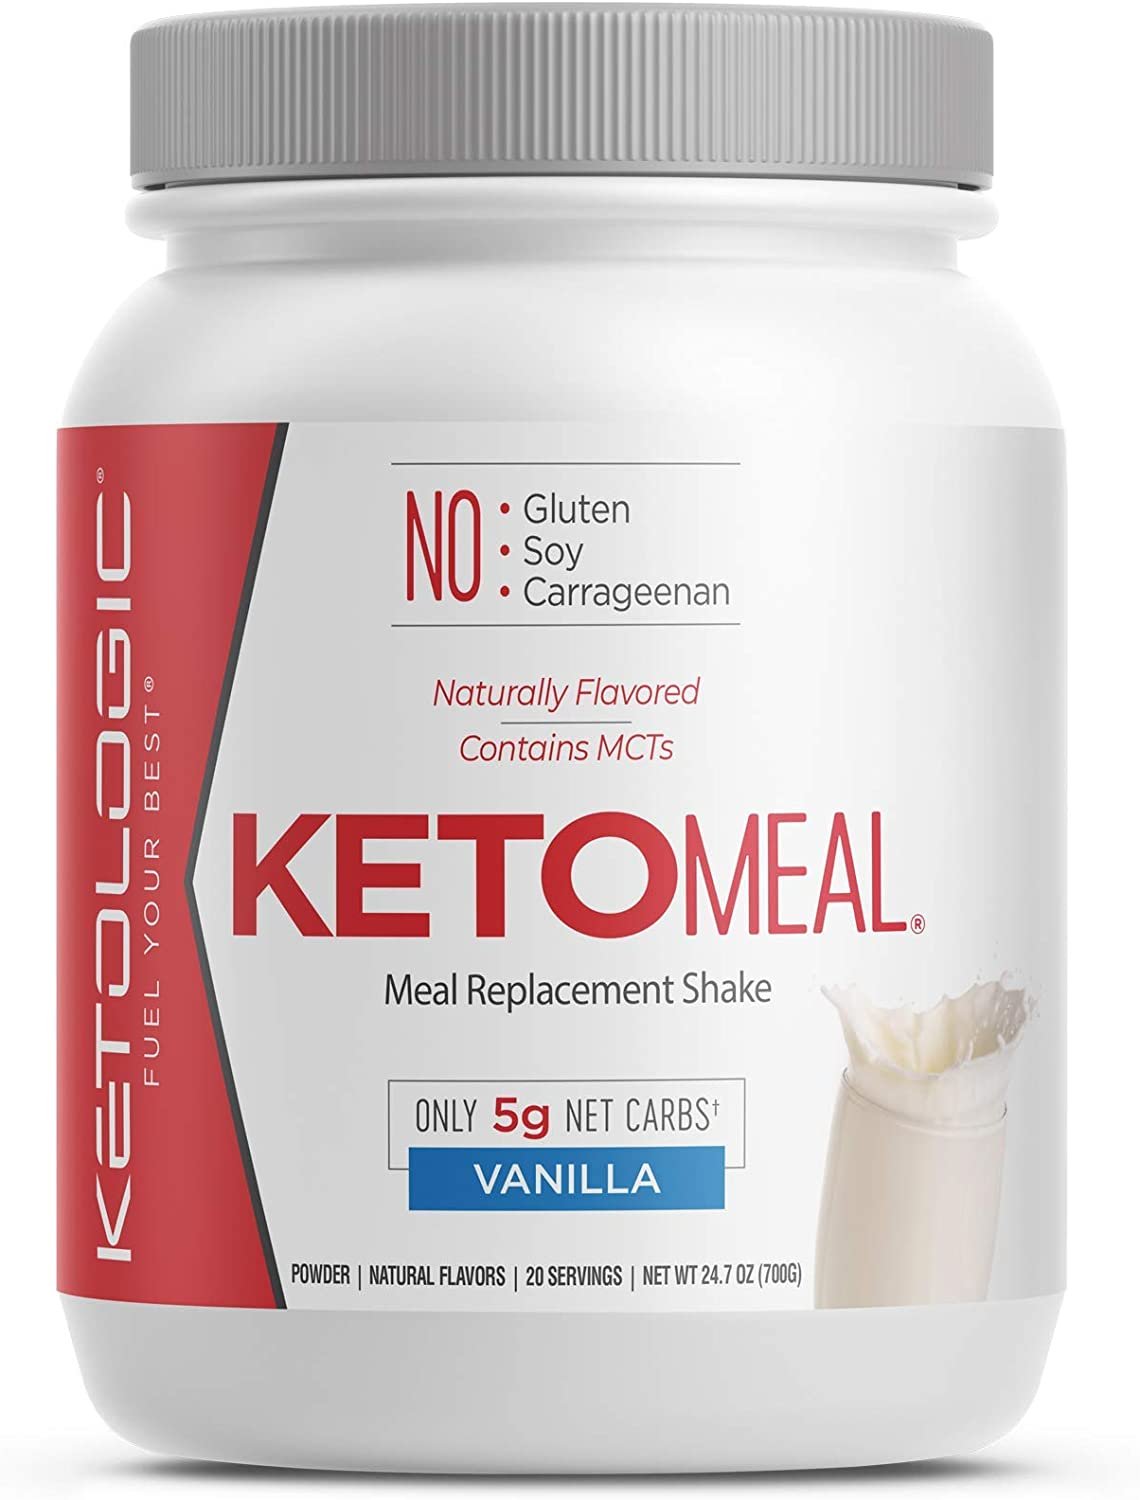 KetoLogic Keto Meal Replacement Shake For Reservation Free Shipping New Optimal Powder Results